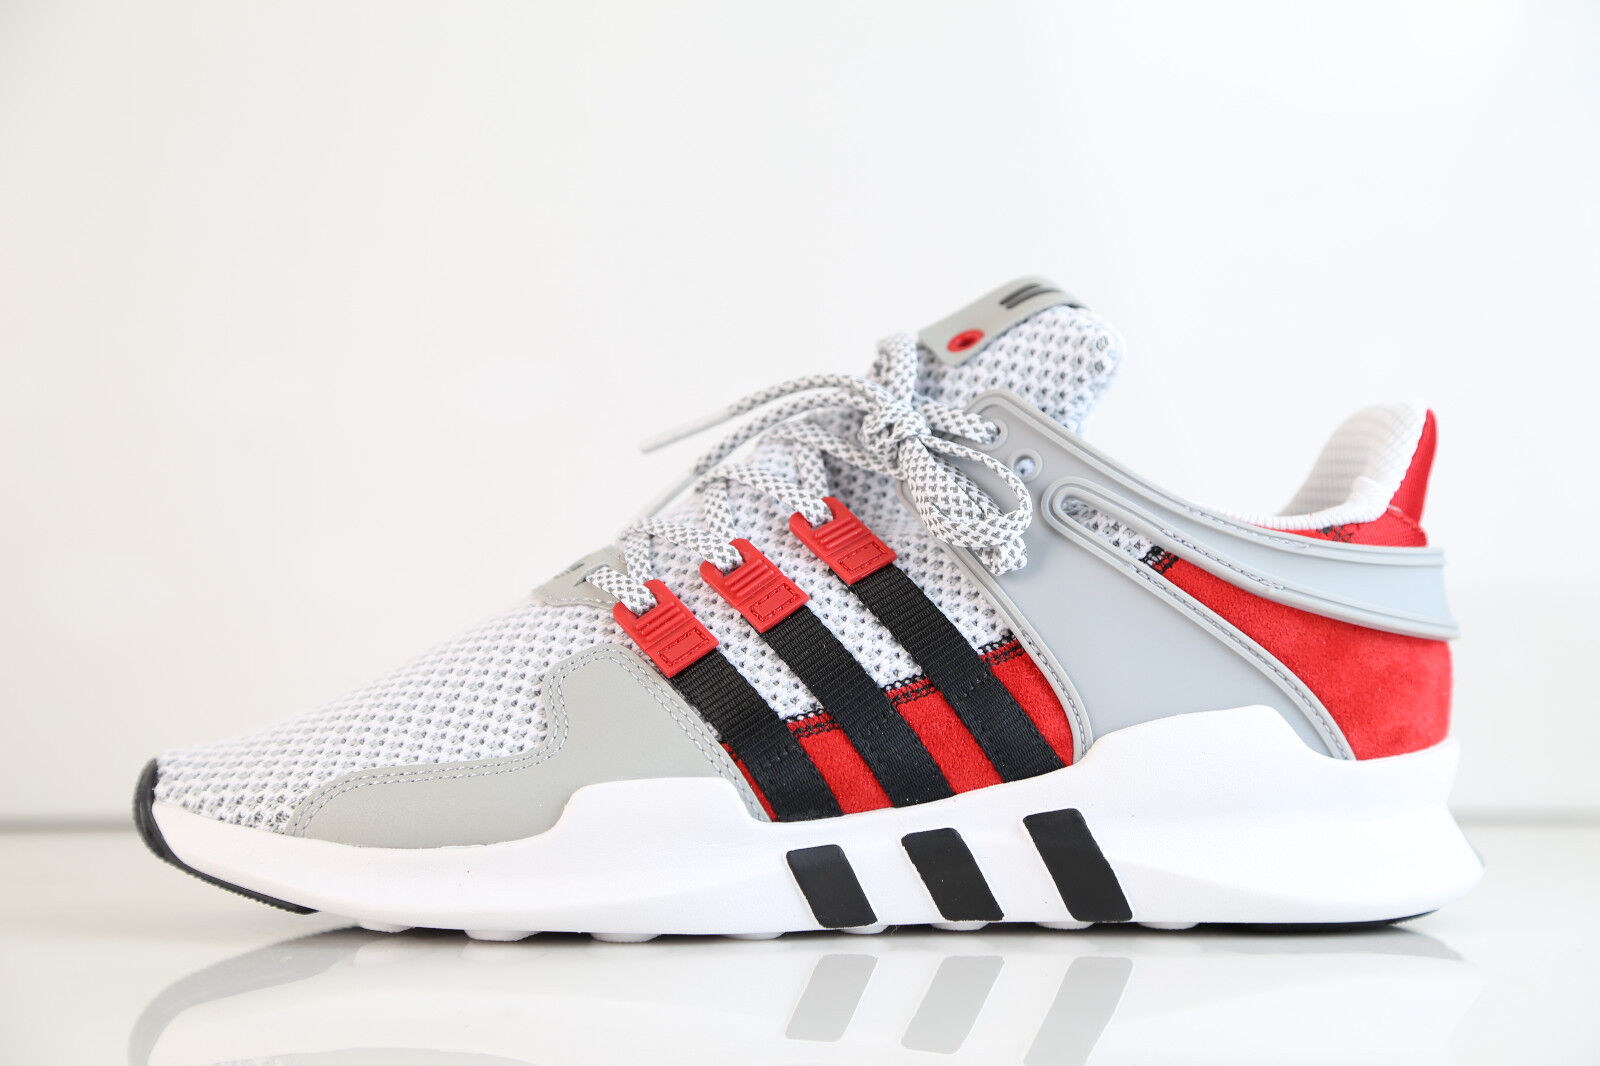 Adidas Consortium Overkill Coat of Arms EQT Support ADV bianca rosso BY2939 8-13